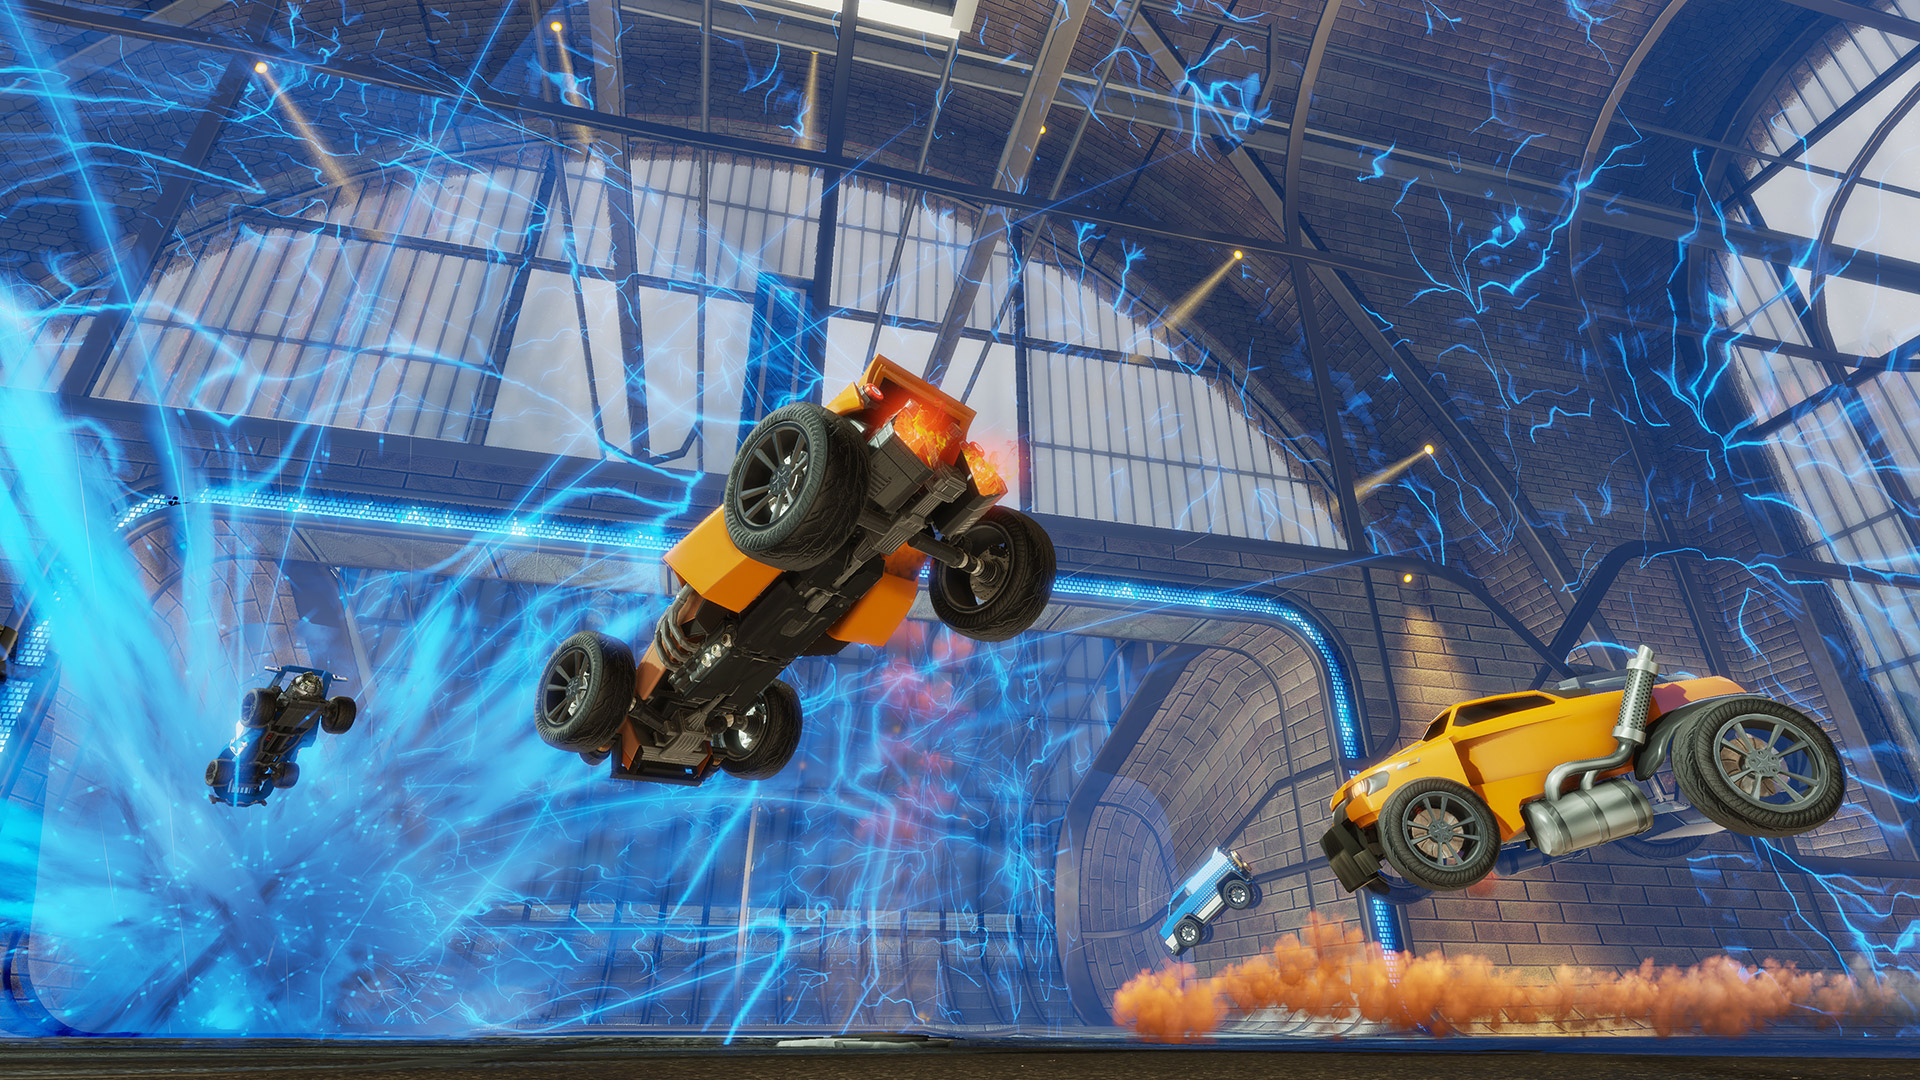 Cross-platform play coming to Rocket League as Xbox Live opens up to